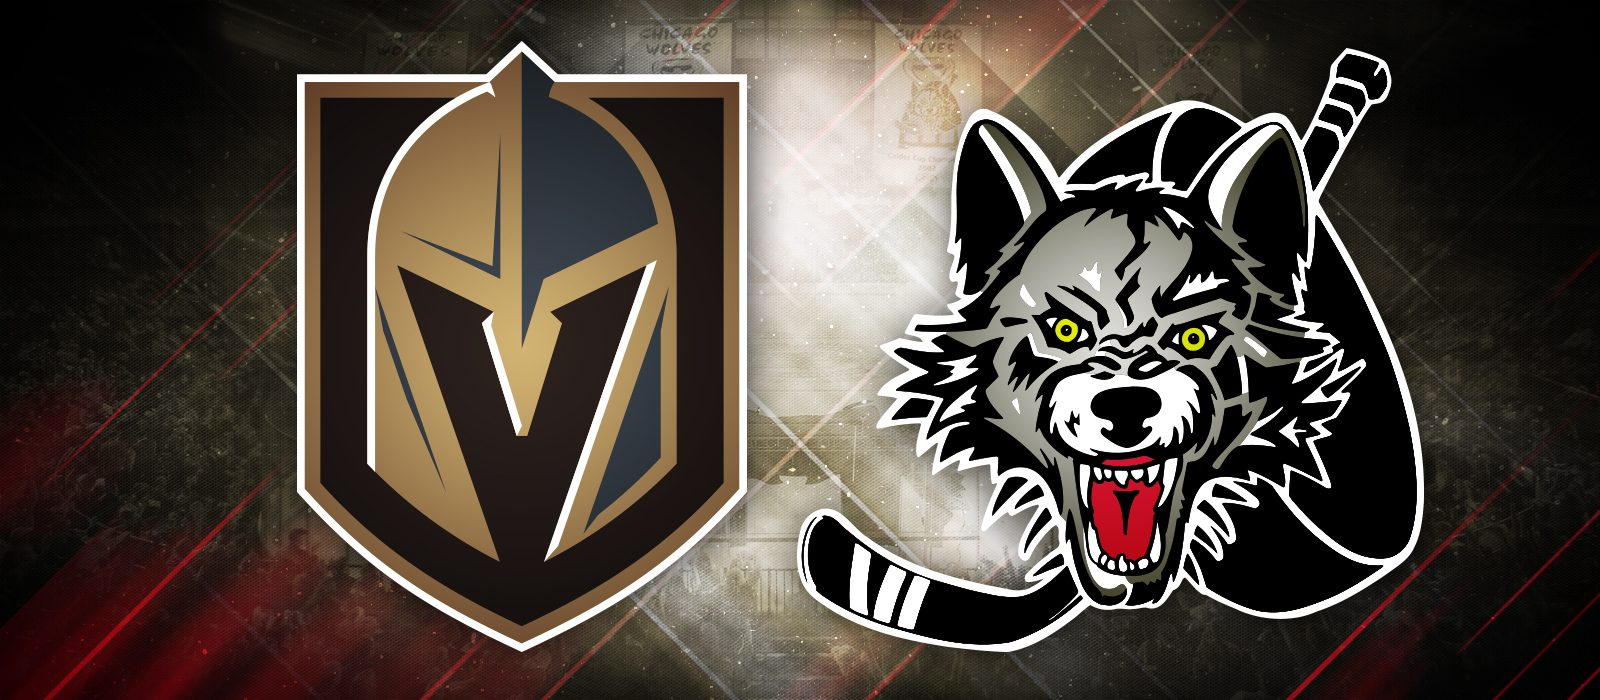 Vegas Golden Knights Chicago Wolves